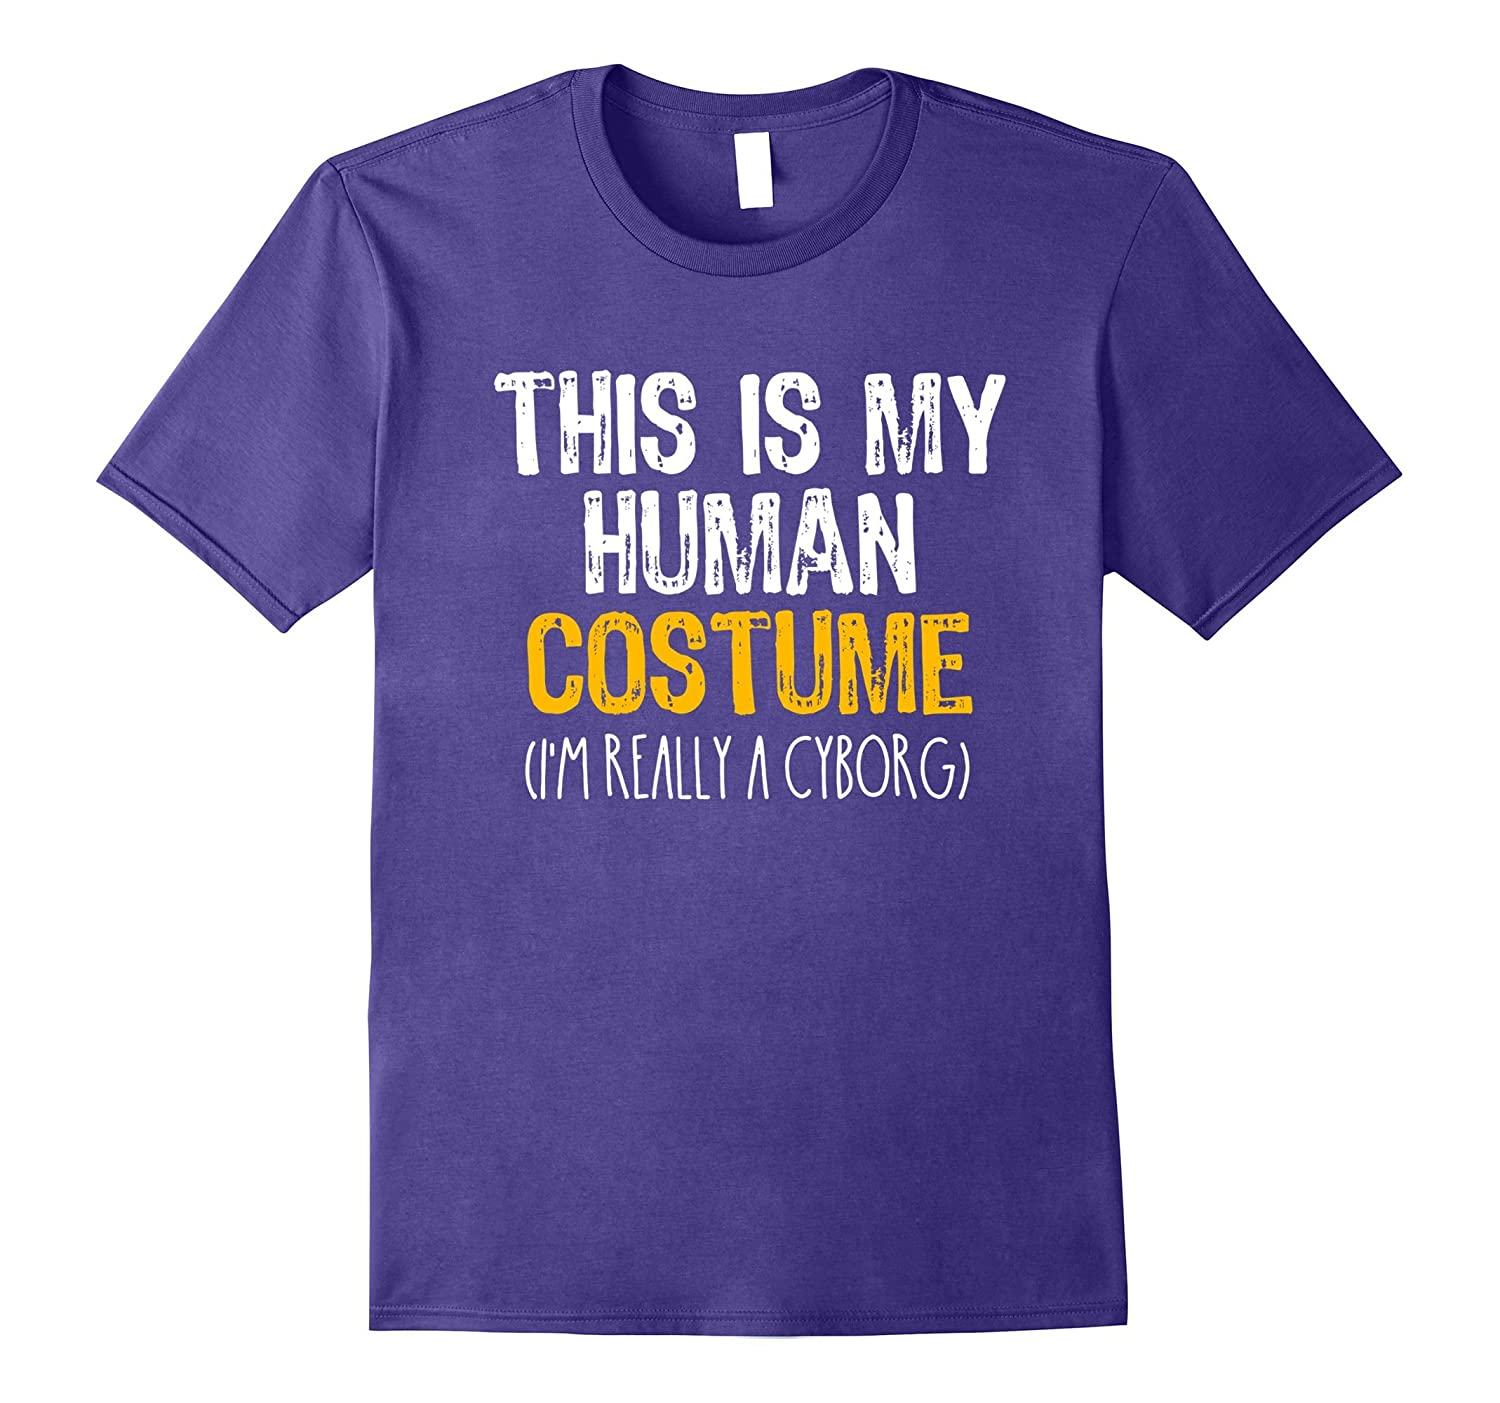 This Is My Human Costume Cyborg Halloween Funny T-shirt-TJ